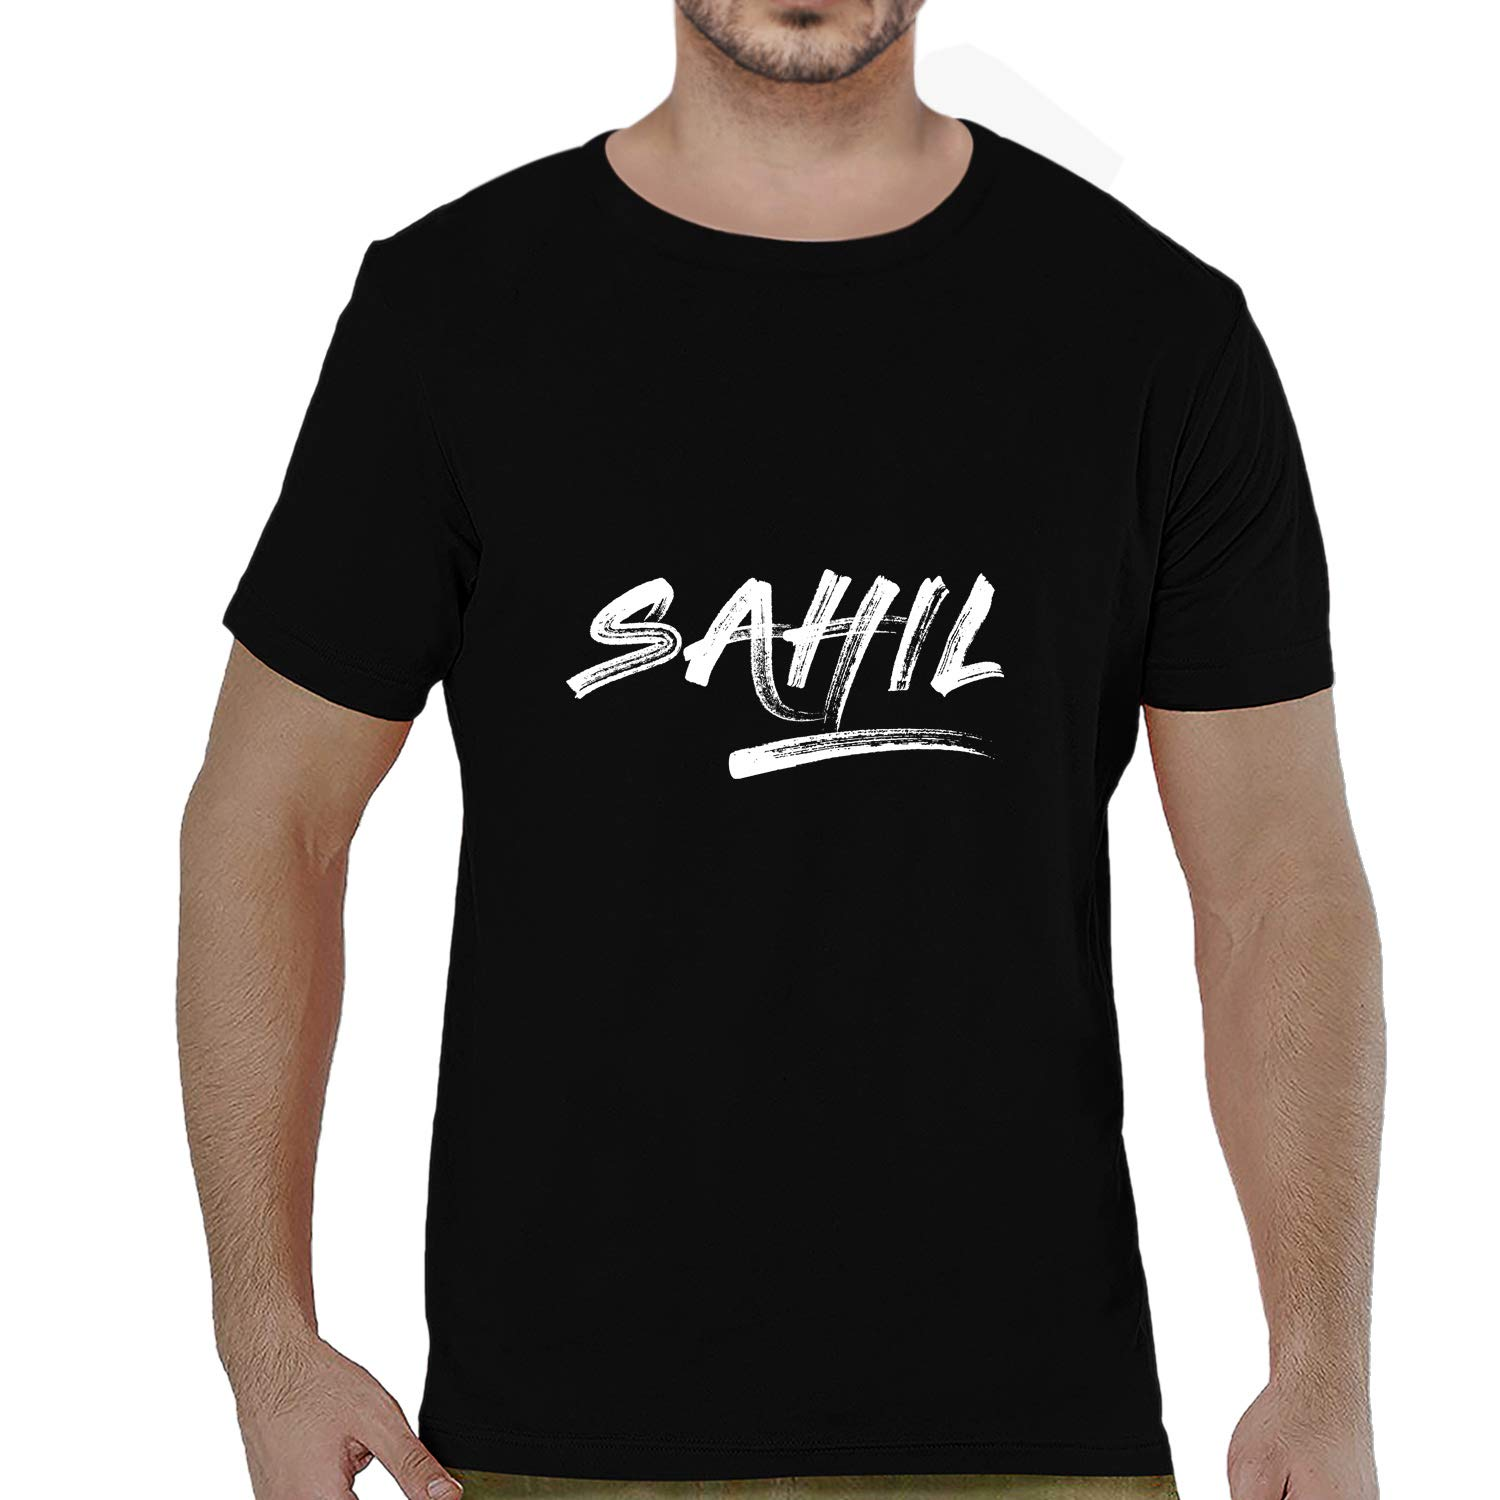 aed0fe31 Pooplu Mens Sahil Cotton Printed Round Neck Half Sleeves Black & White T  Shirt. Common Names, Symbol Tshirts: Amazon.in: Clothing & Accessories